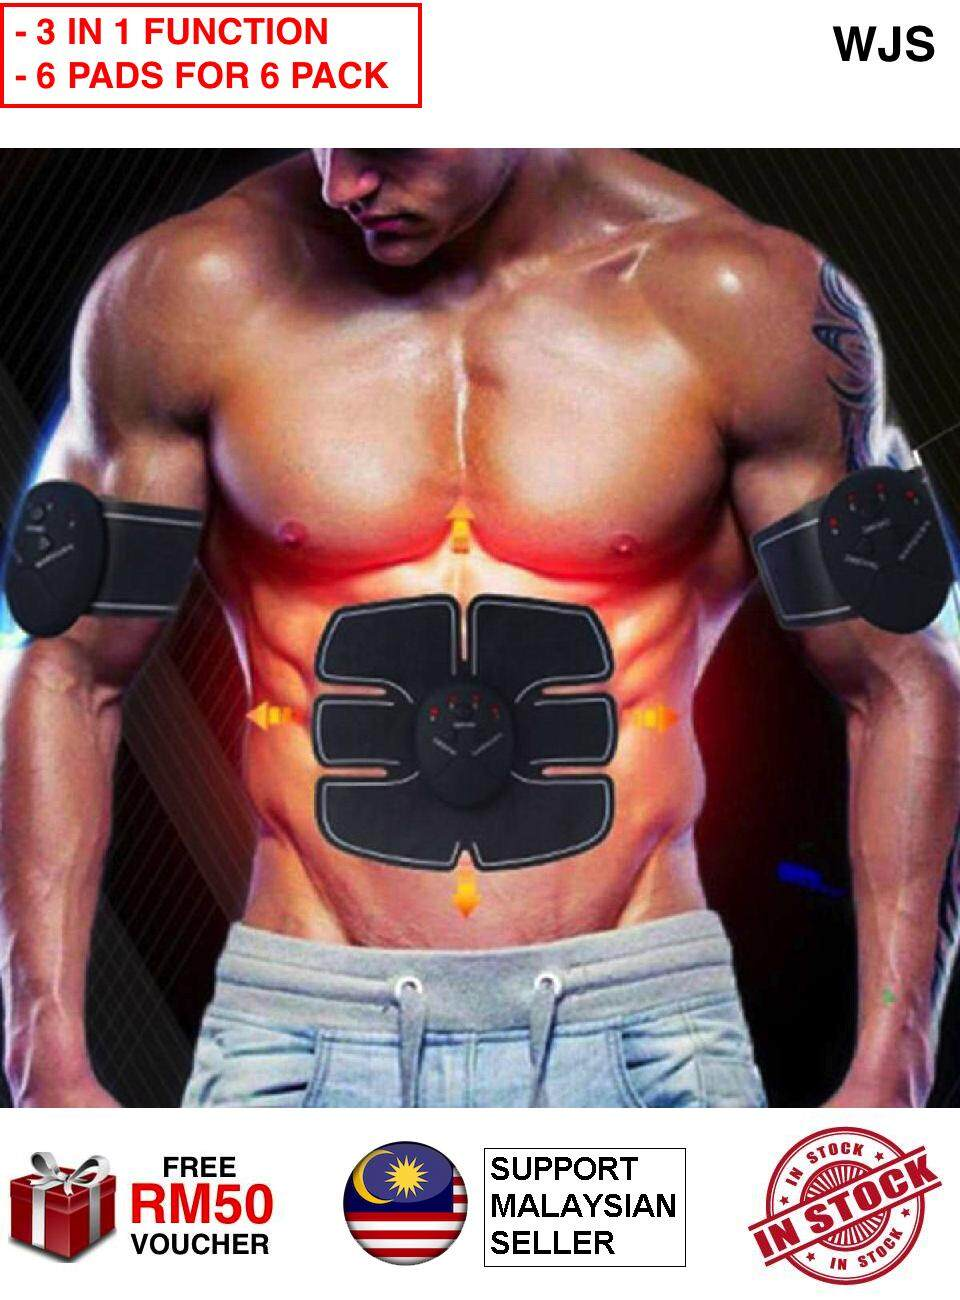 (3 IN 1 FUNCTION WITH 6 PADS) WJS 3pcs 3 pcs Portable Flexible Abdomen Stimulator Muscle Training Body Shape Fit Set Abs Six Pad for Six Packs 6 Pack 6 Packs Massage Trainer Sticker Controller Abs Trainer Abdomen Trainer Home Gym (FREE RM 50 VOUCHER)